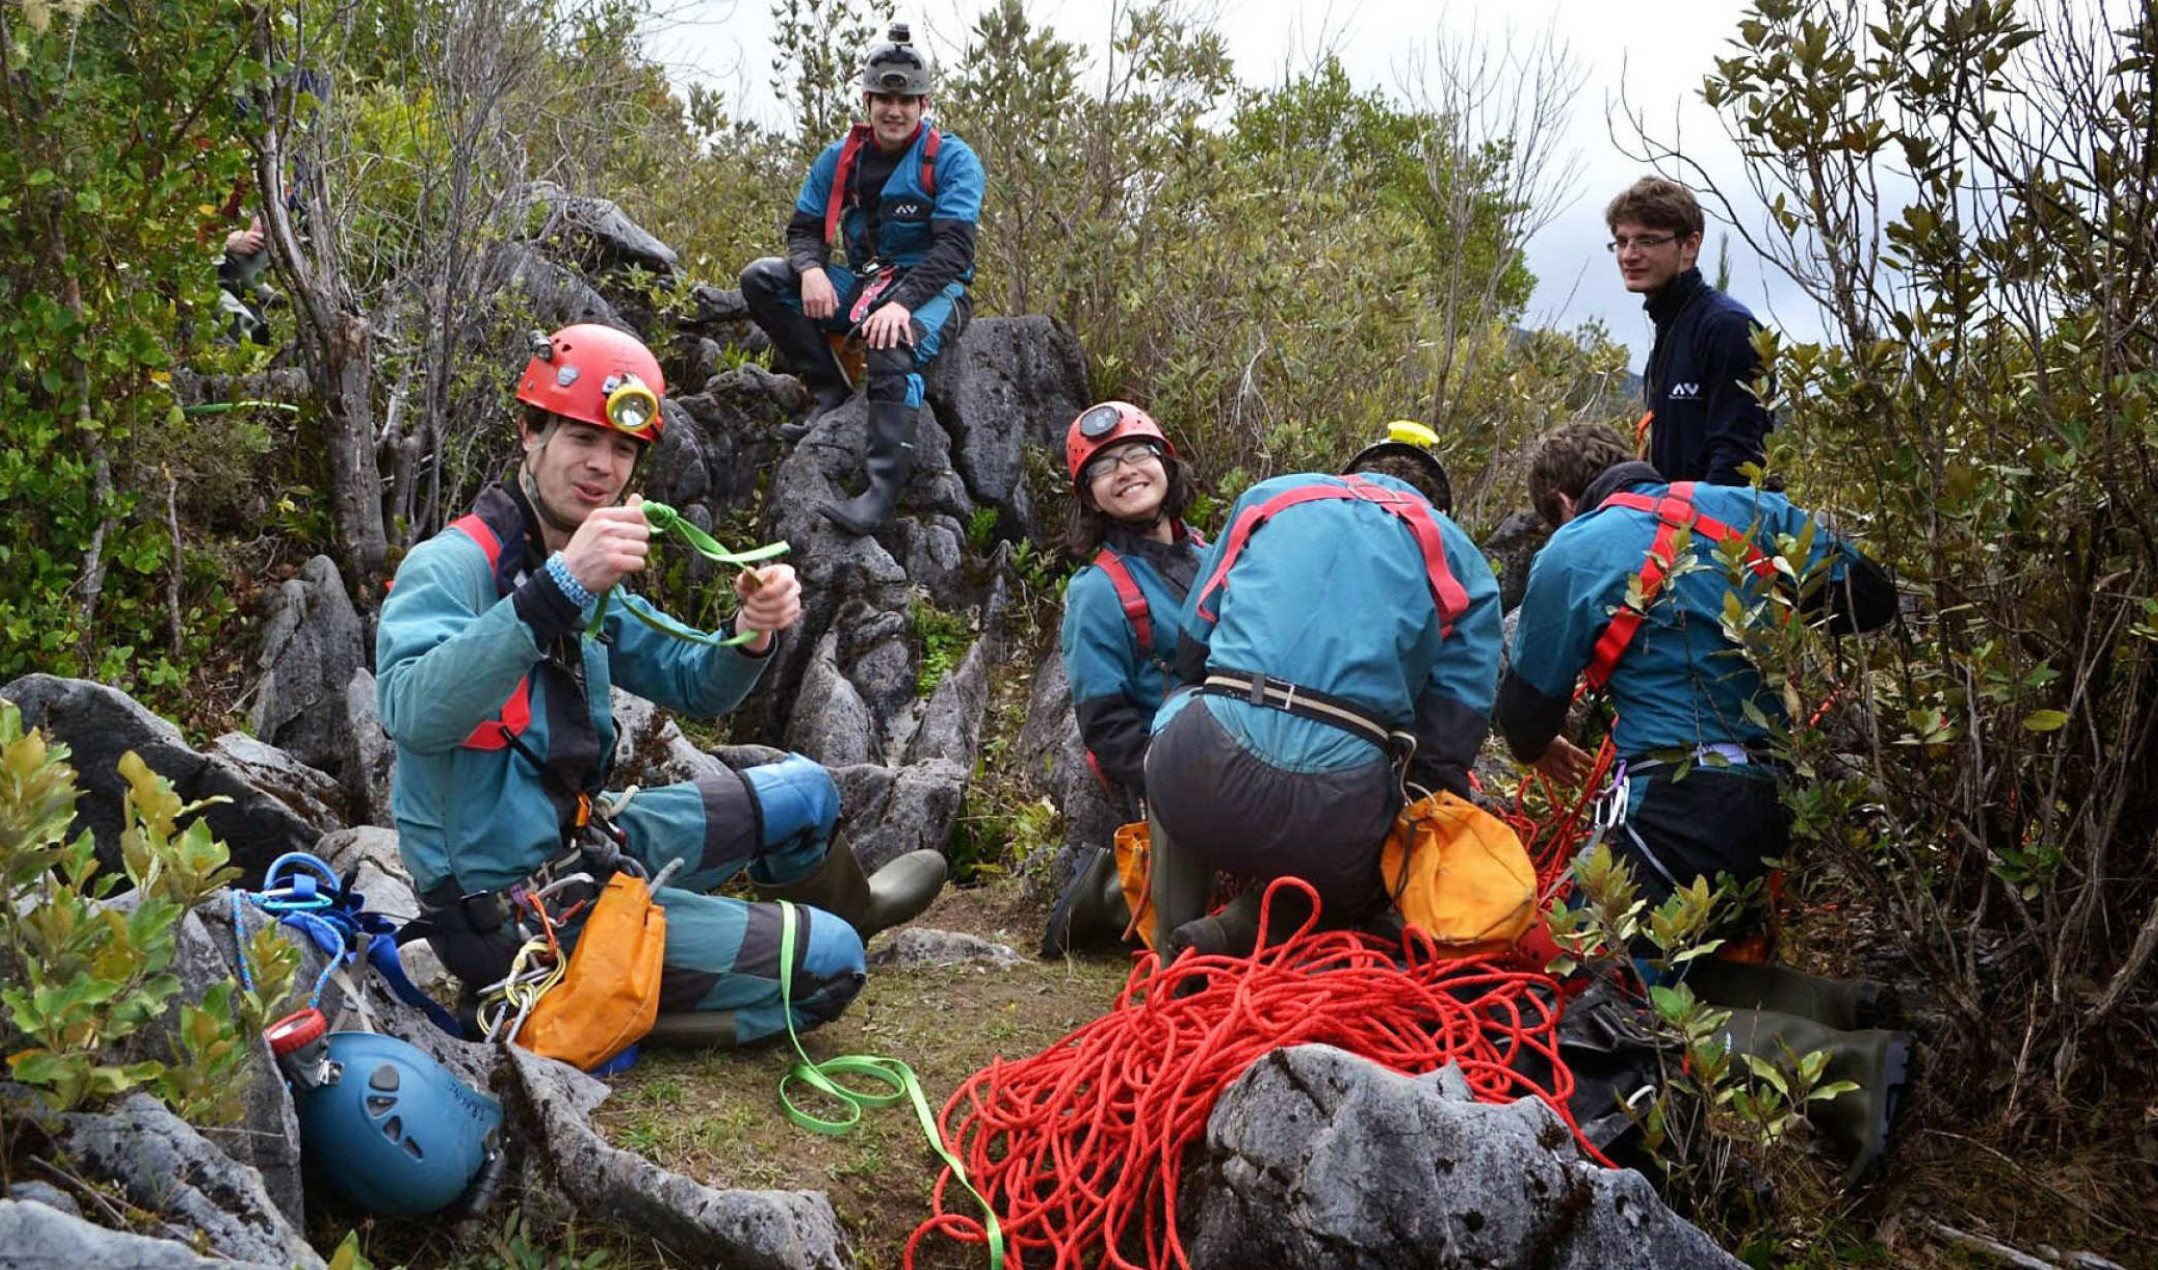 A group of students preparing to go caving